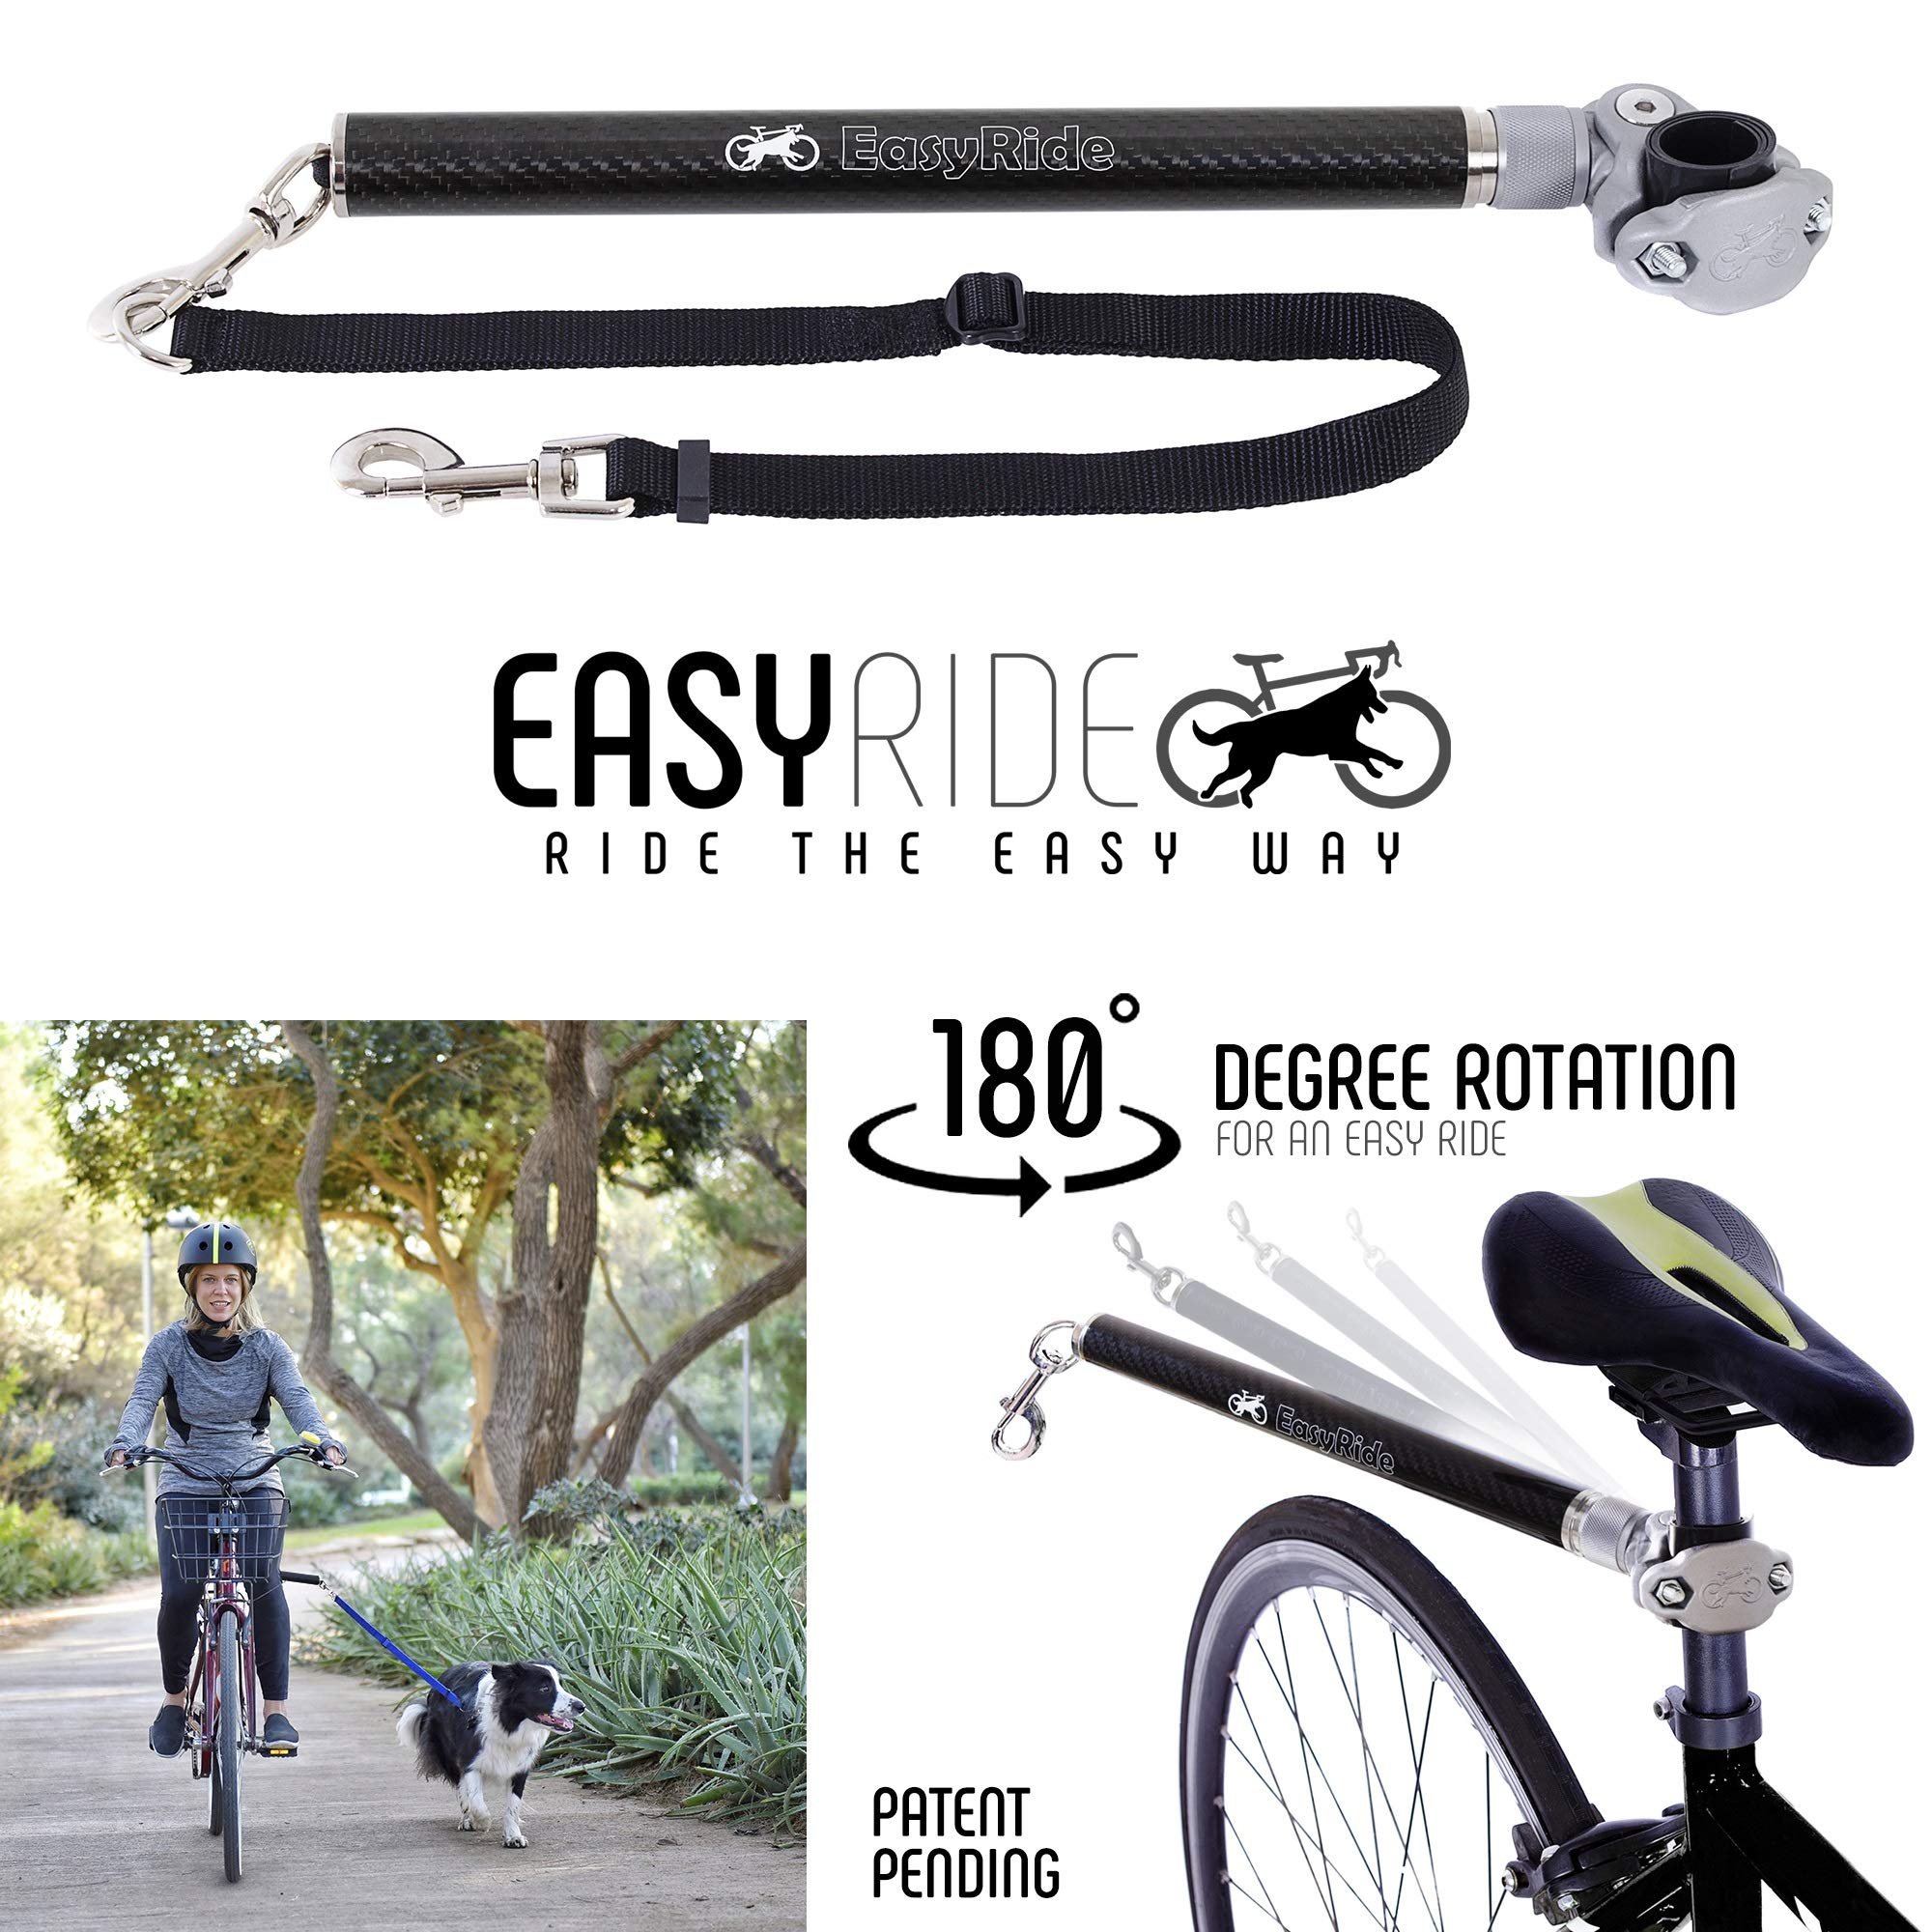 MALABI EasyRide Dog Bike Leash Set - Patent Pending Rotating with Shock Absorbers and Quick Attach Mechanism | Carbon Fiber | Hands-Free, Detachable, Adjustable Leash for The Smoothest Ride